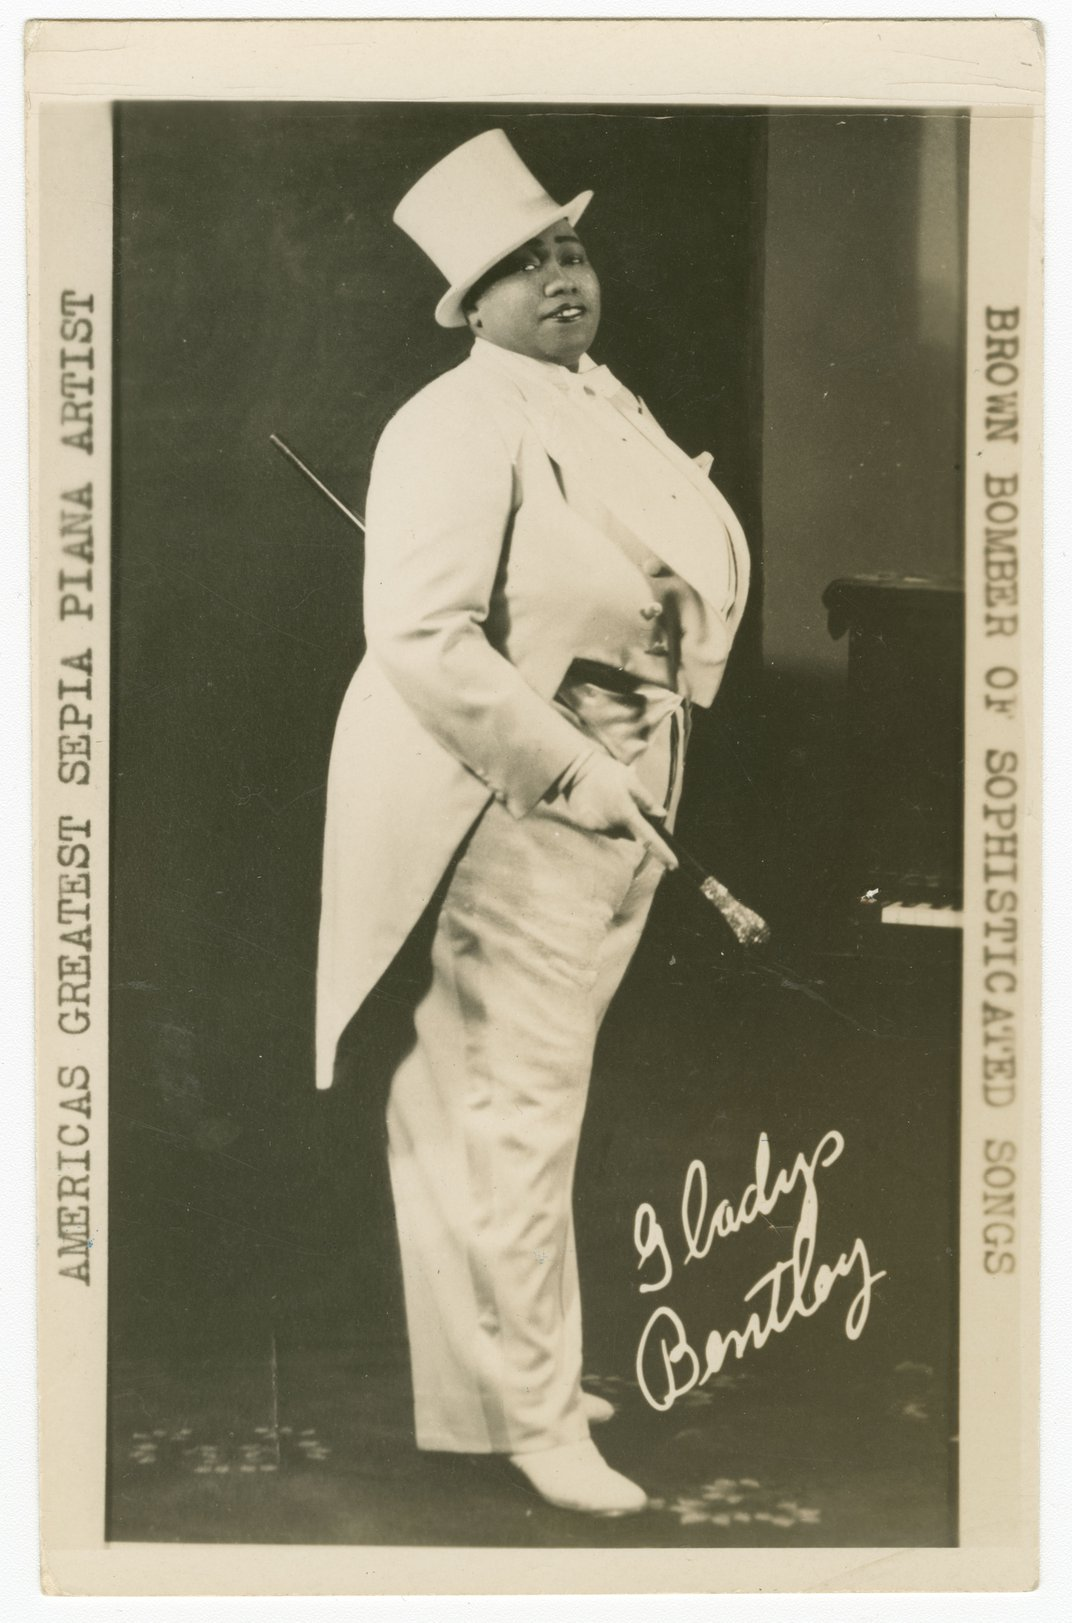 The Great Blues Singer Gladys Bentley Broke All the Rules